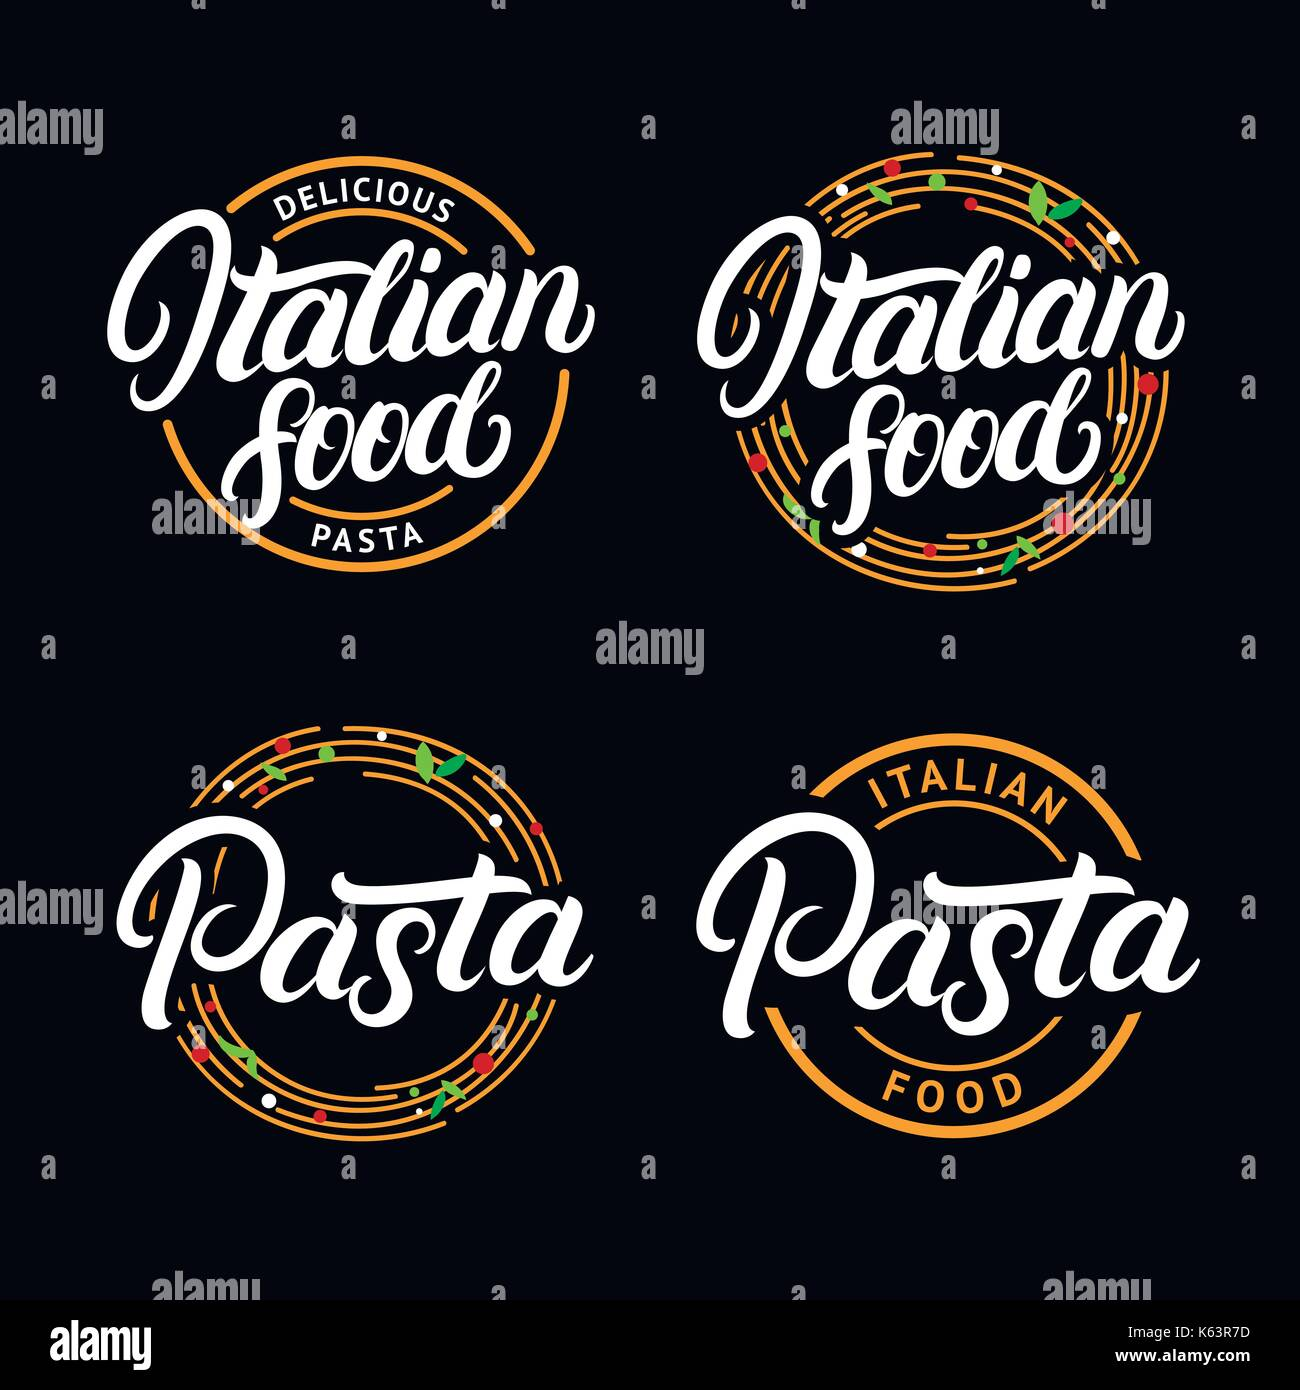 Set Of Italian Food And Pasta Hand Written Lettering Logo